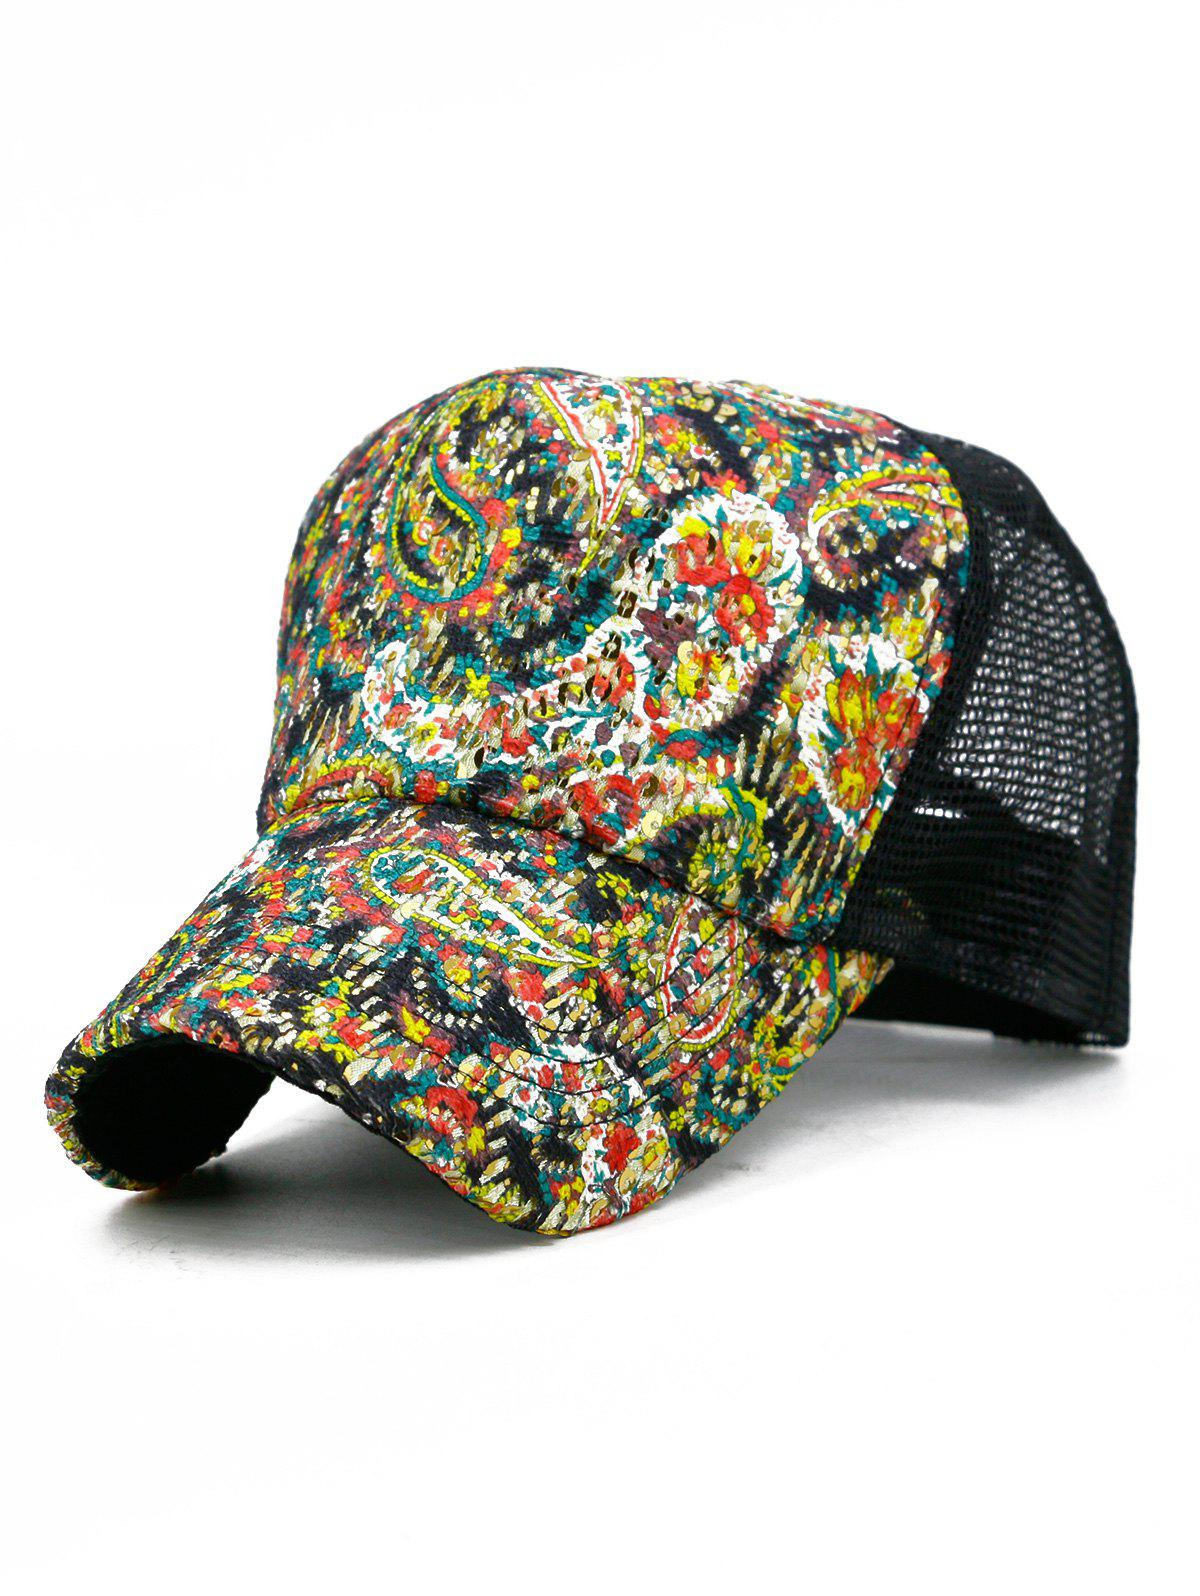 Hot Peacock Tail Decorative Mesh Baseball Hat